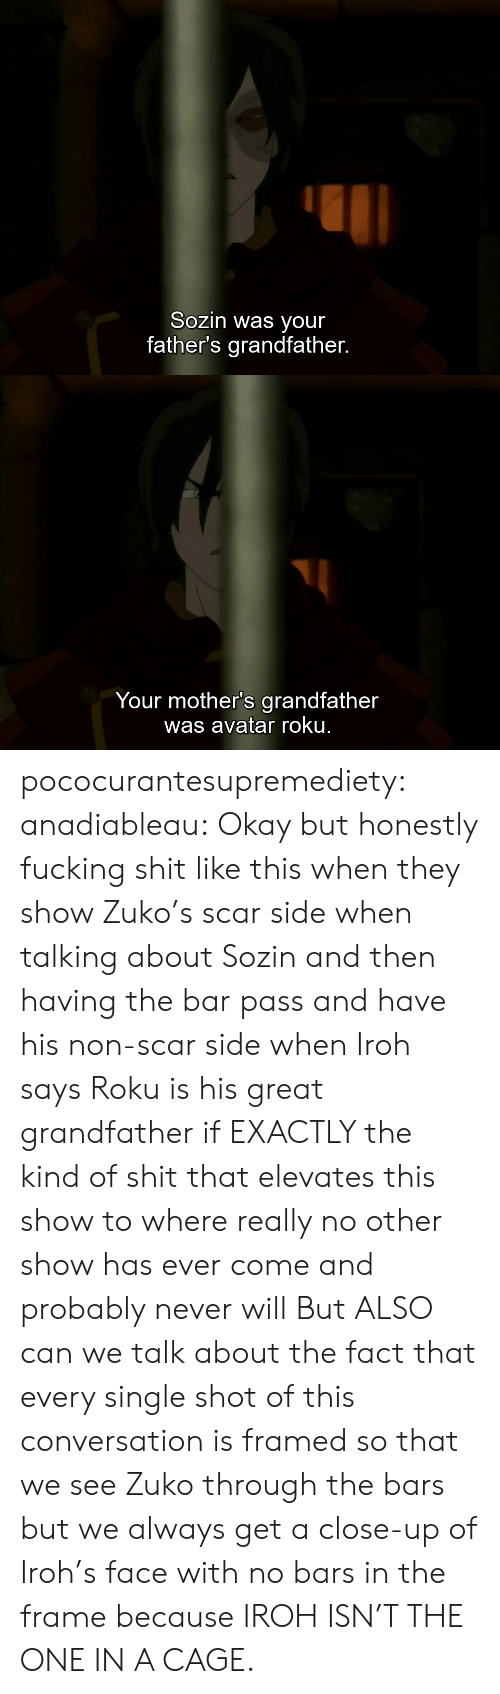 Fucking, Shit, and Tumblr: Sozin was your  father's grandfather.   Your mother's grandfather  was avatar roku. pococurantesupremediety:  anadiableau: Okay but honestly fucking shit like this when they show Zuko's scar side when talking about Sozin and then having the bar pass and have his non-scar side when Iroh says Roku is his great grandfather if EXACTLY the kind of shit that elevates this show to where really no other show has ever come and probably never will But ALSO can we talk about the fact that every single shot of this conversation is framed so that we see Zuko through the bars but we always get a close-up of Iroh's face with no bars in the frame because IROH ISN'T THE ONE IN A CAGE.